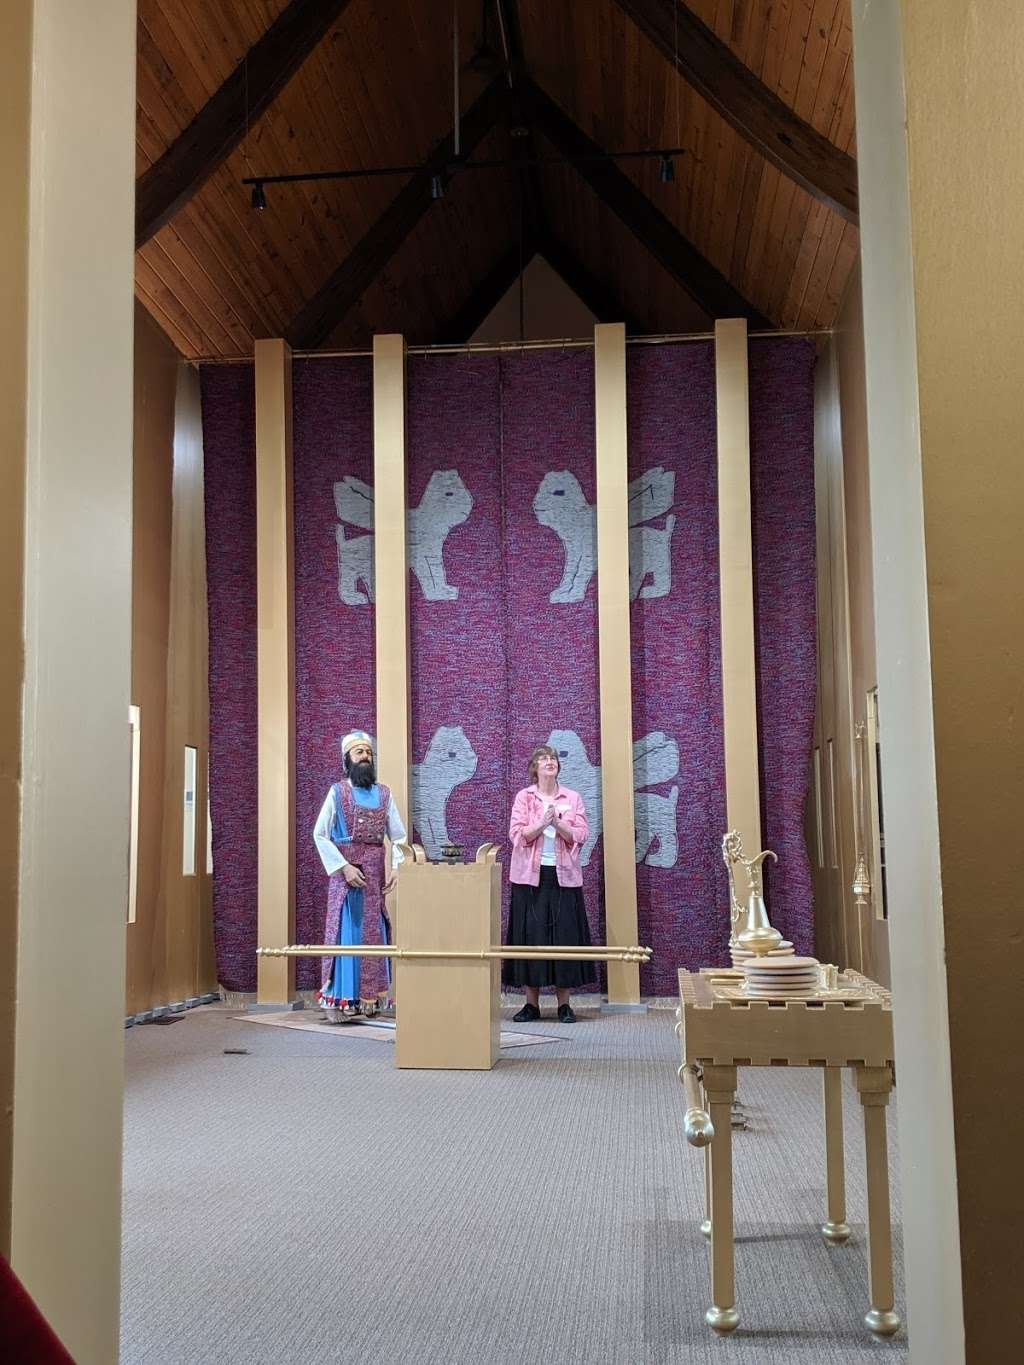 Biblical Tabernacle Reproduction - museum  | Photo 7 of 10 | Address: 2209 Millstream Rd, Lancaster, PA 17602, USA | Phone: (717) 299-0954